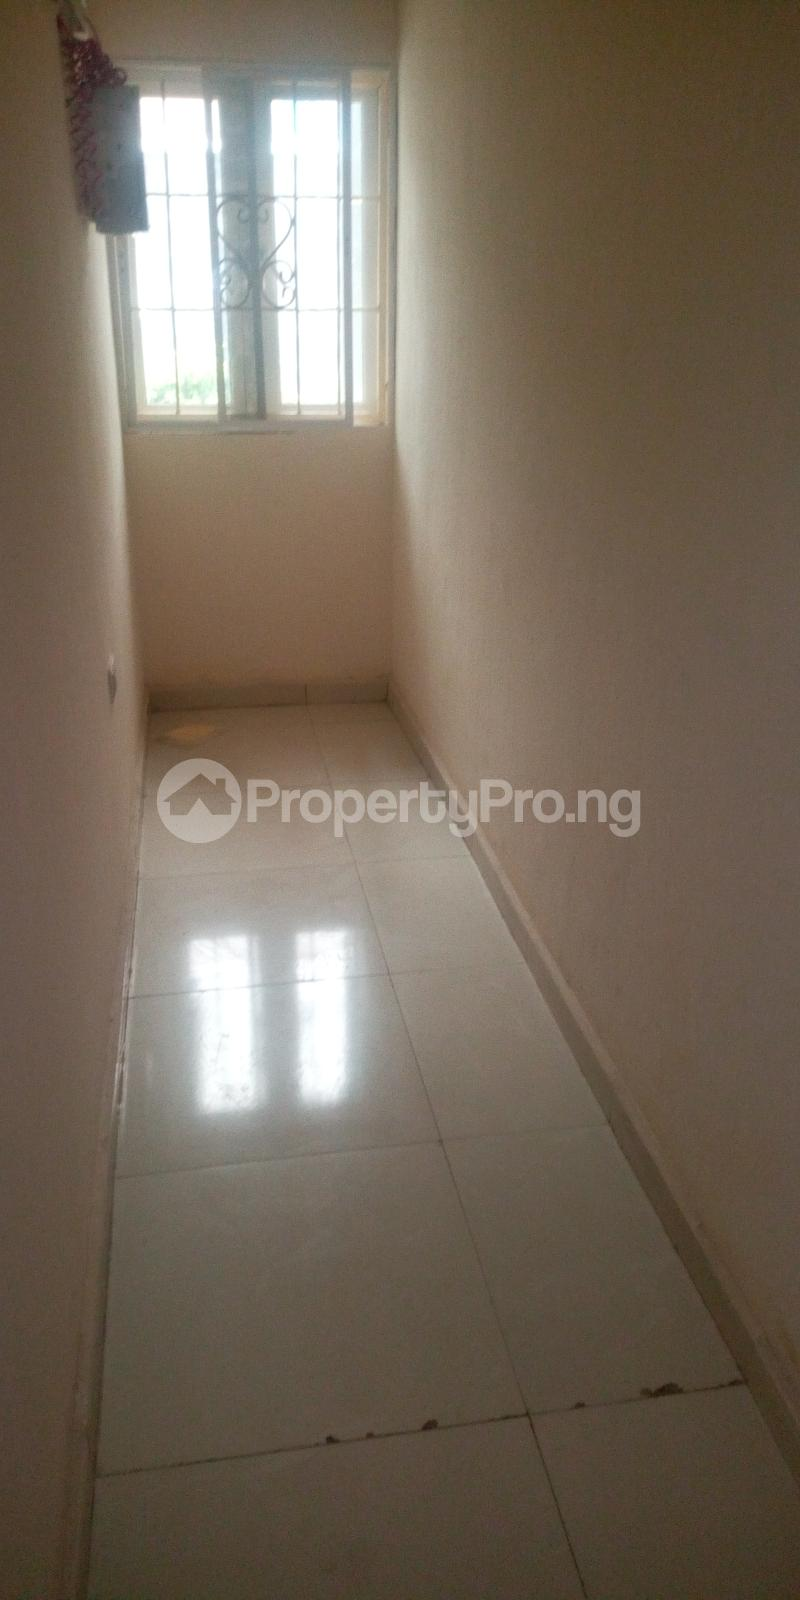 2 bedroom Flat / Apartment for rent Jehovah's witness road Calabar Cross River - 0